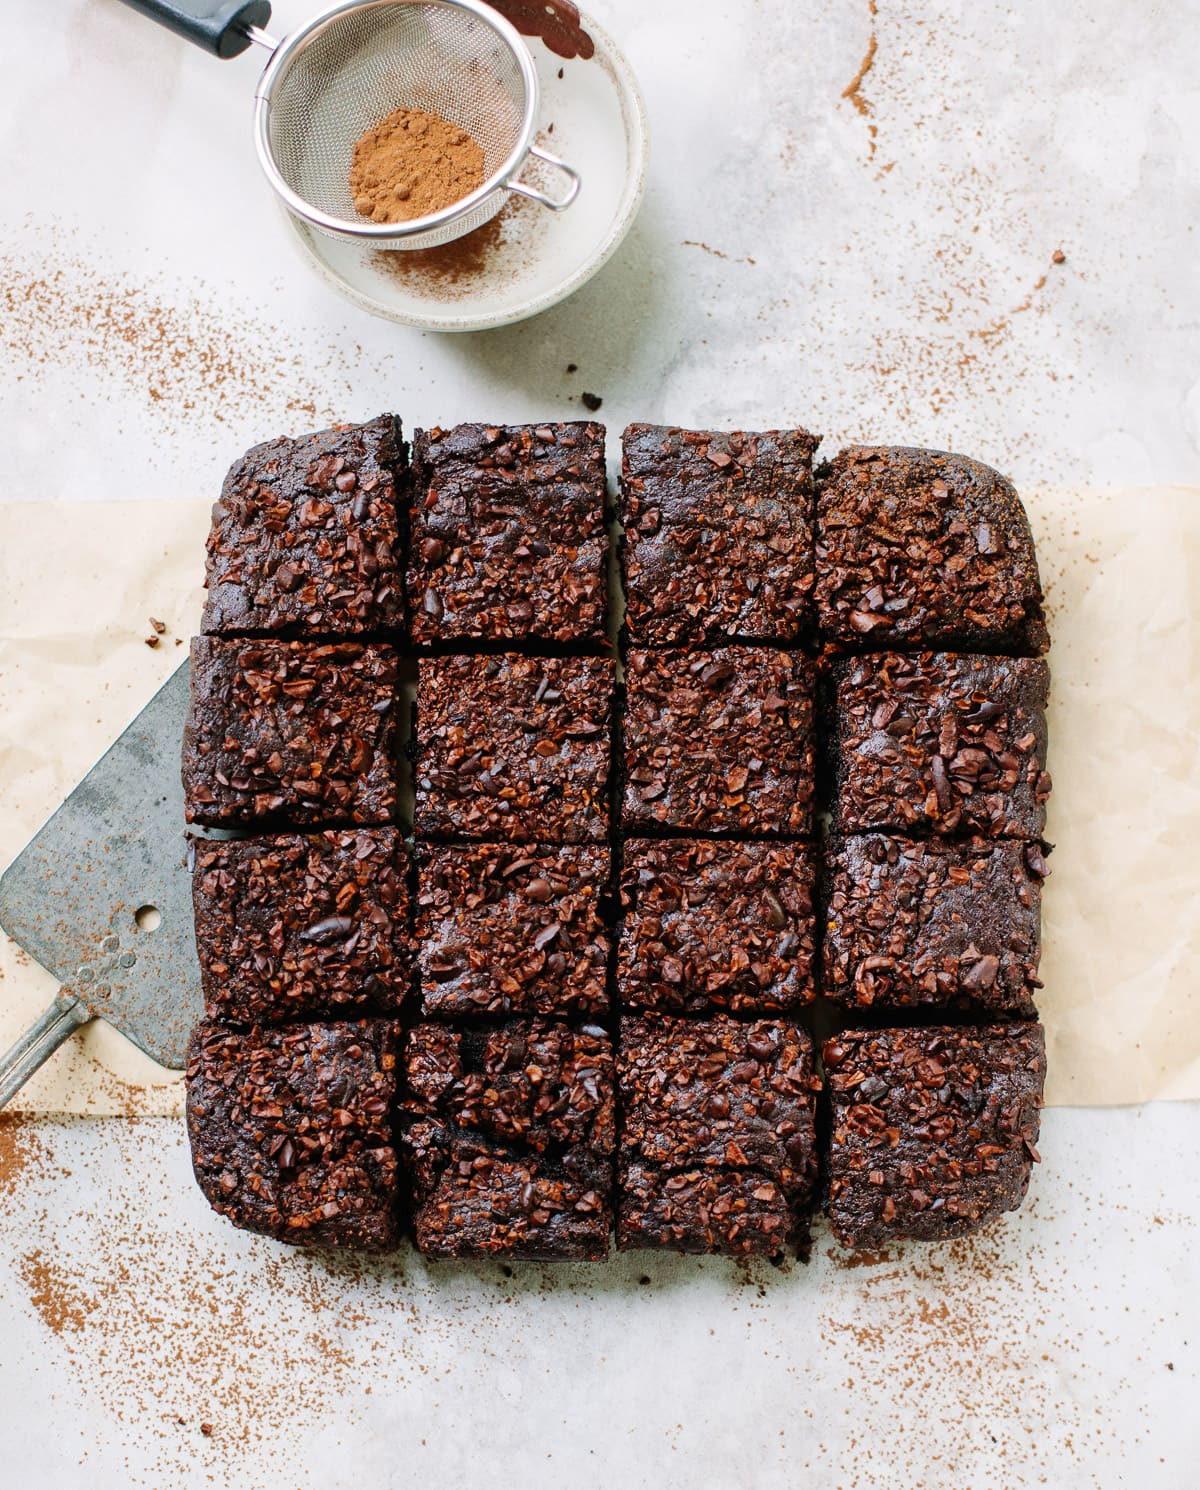 Cocoa Brownies cut into squares, topped with cacao nibs